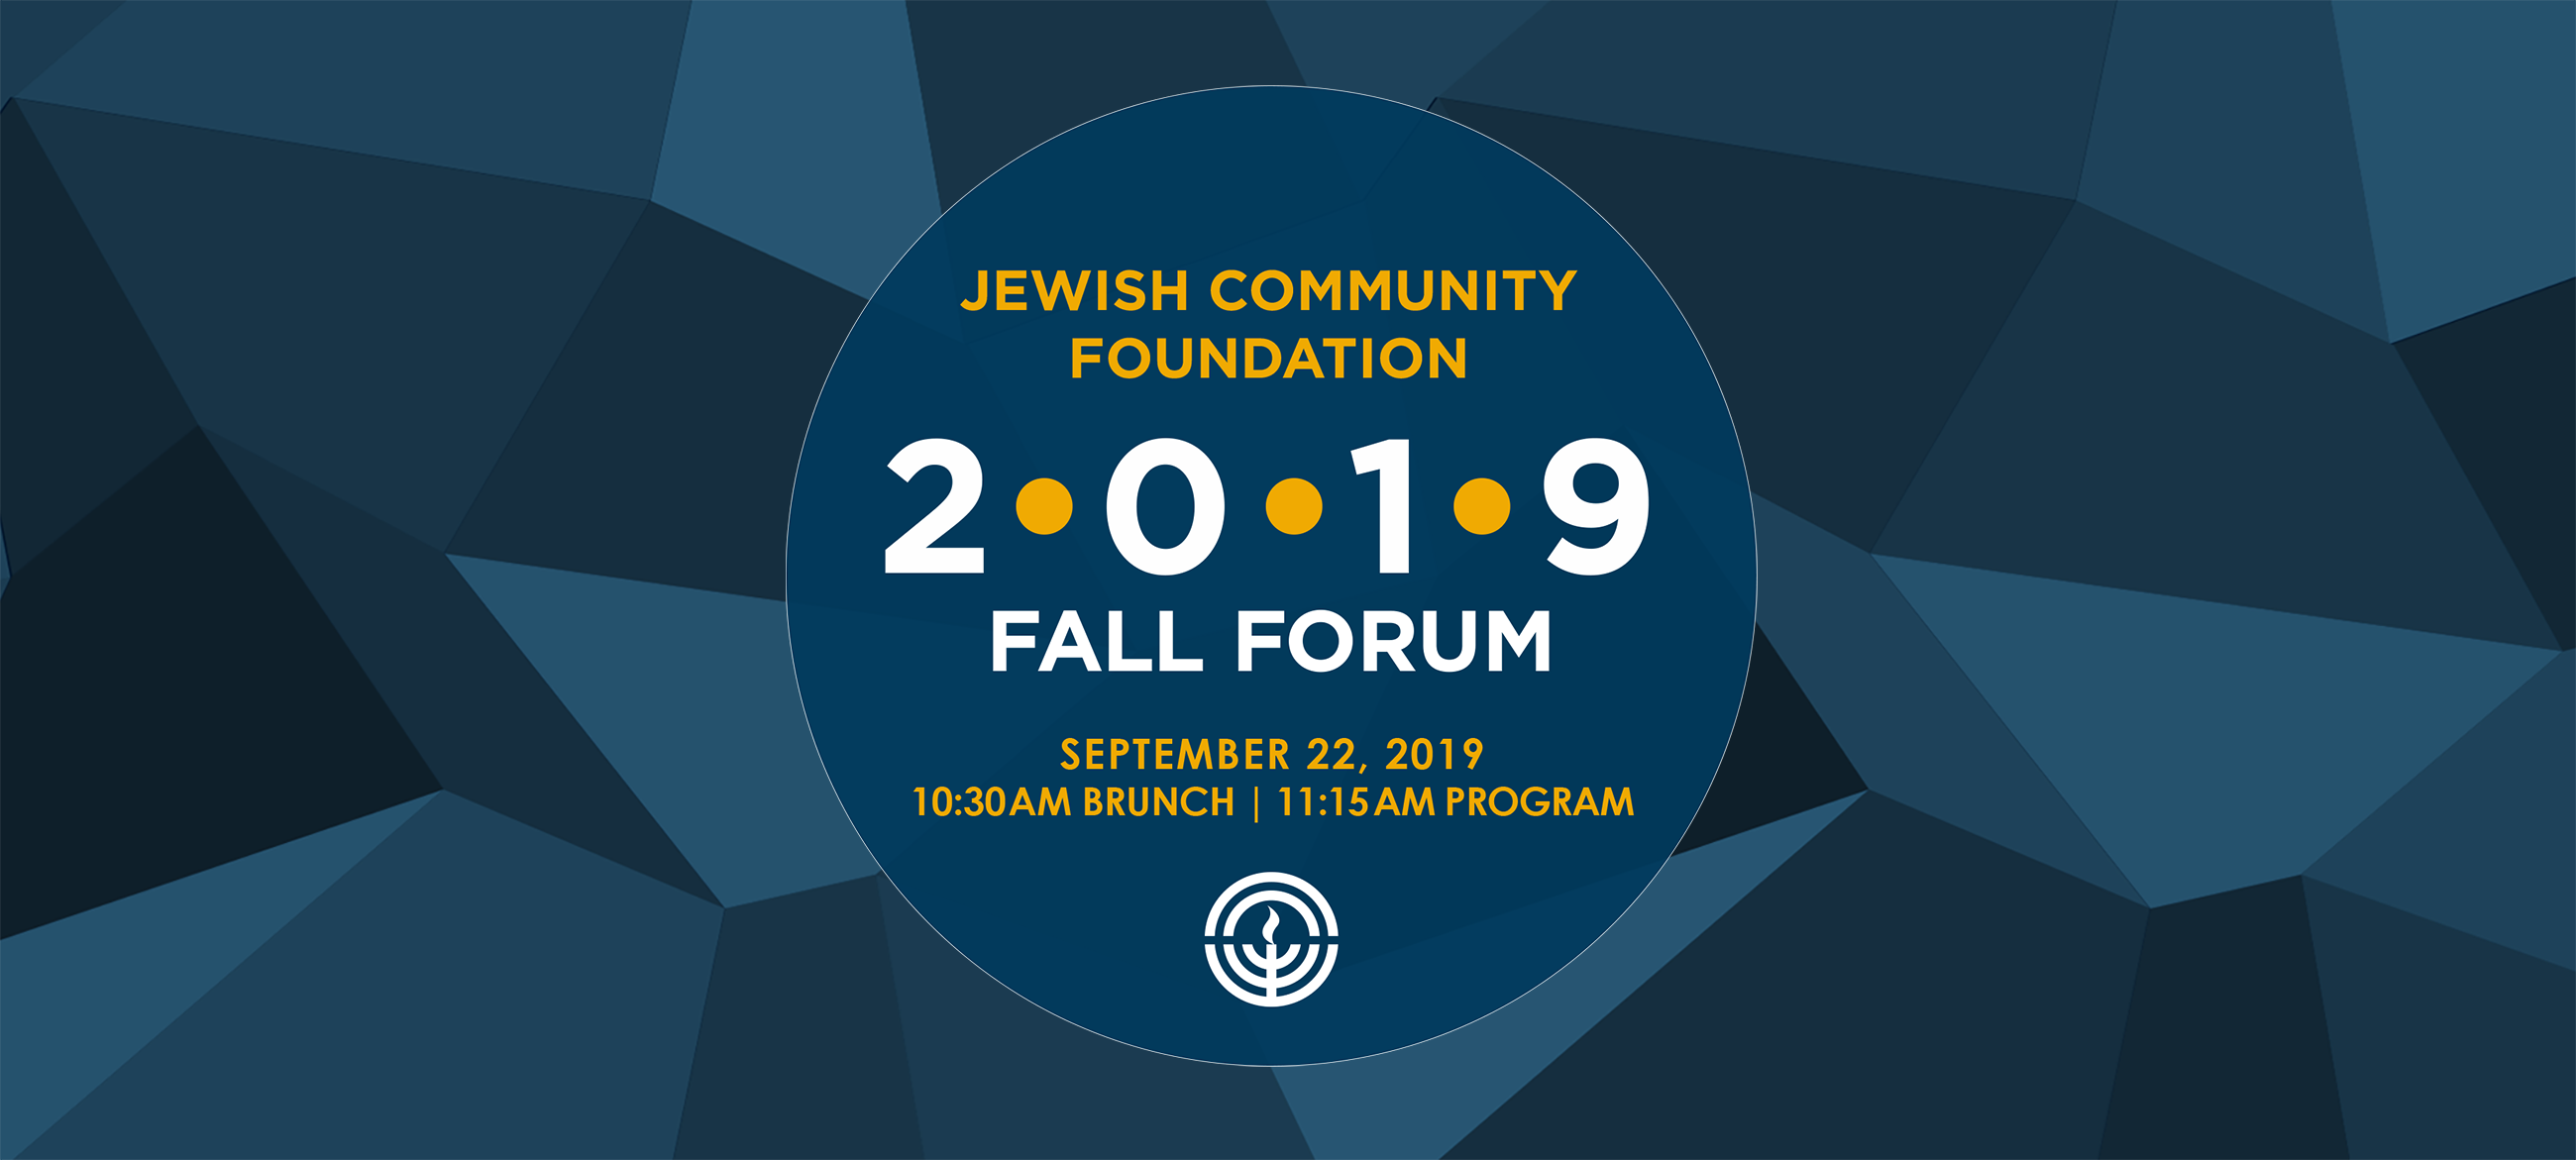 Foundation Fall Forum